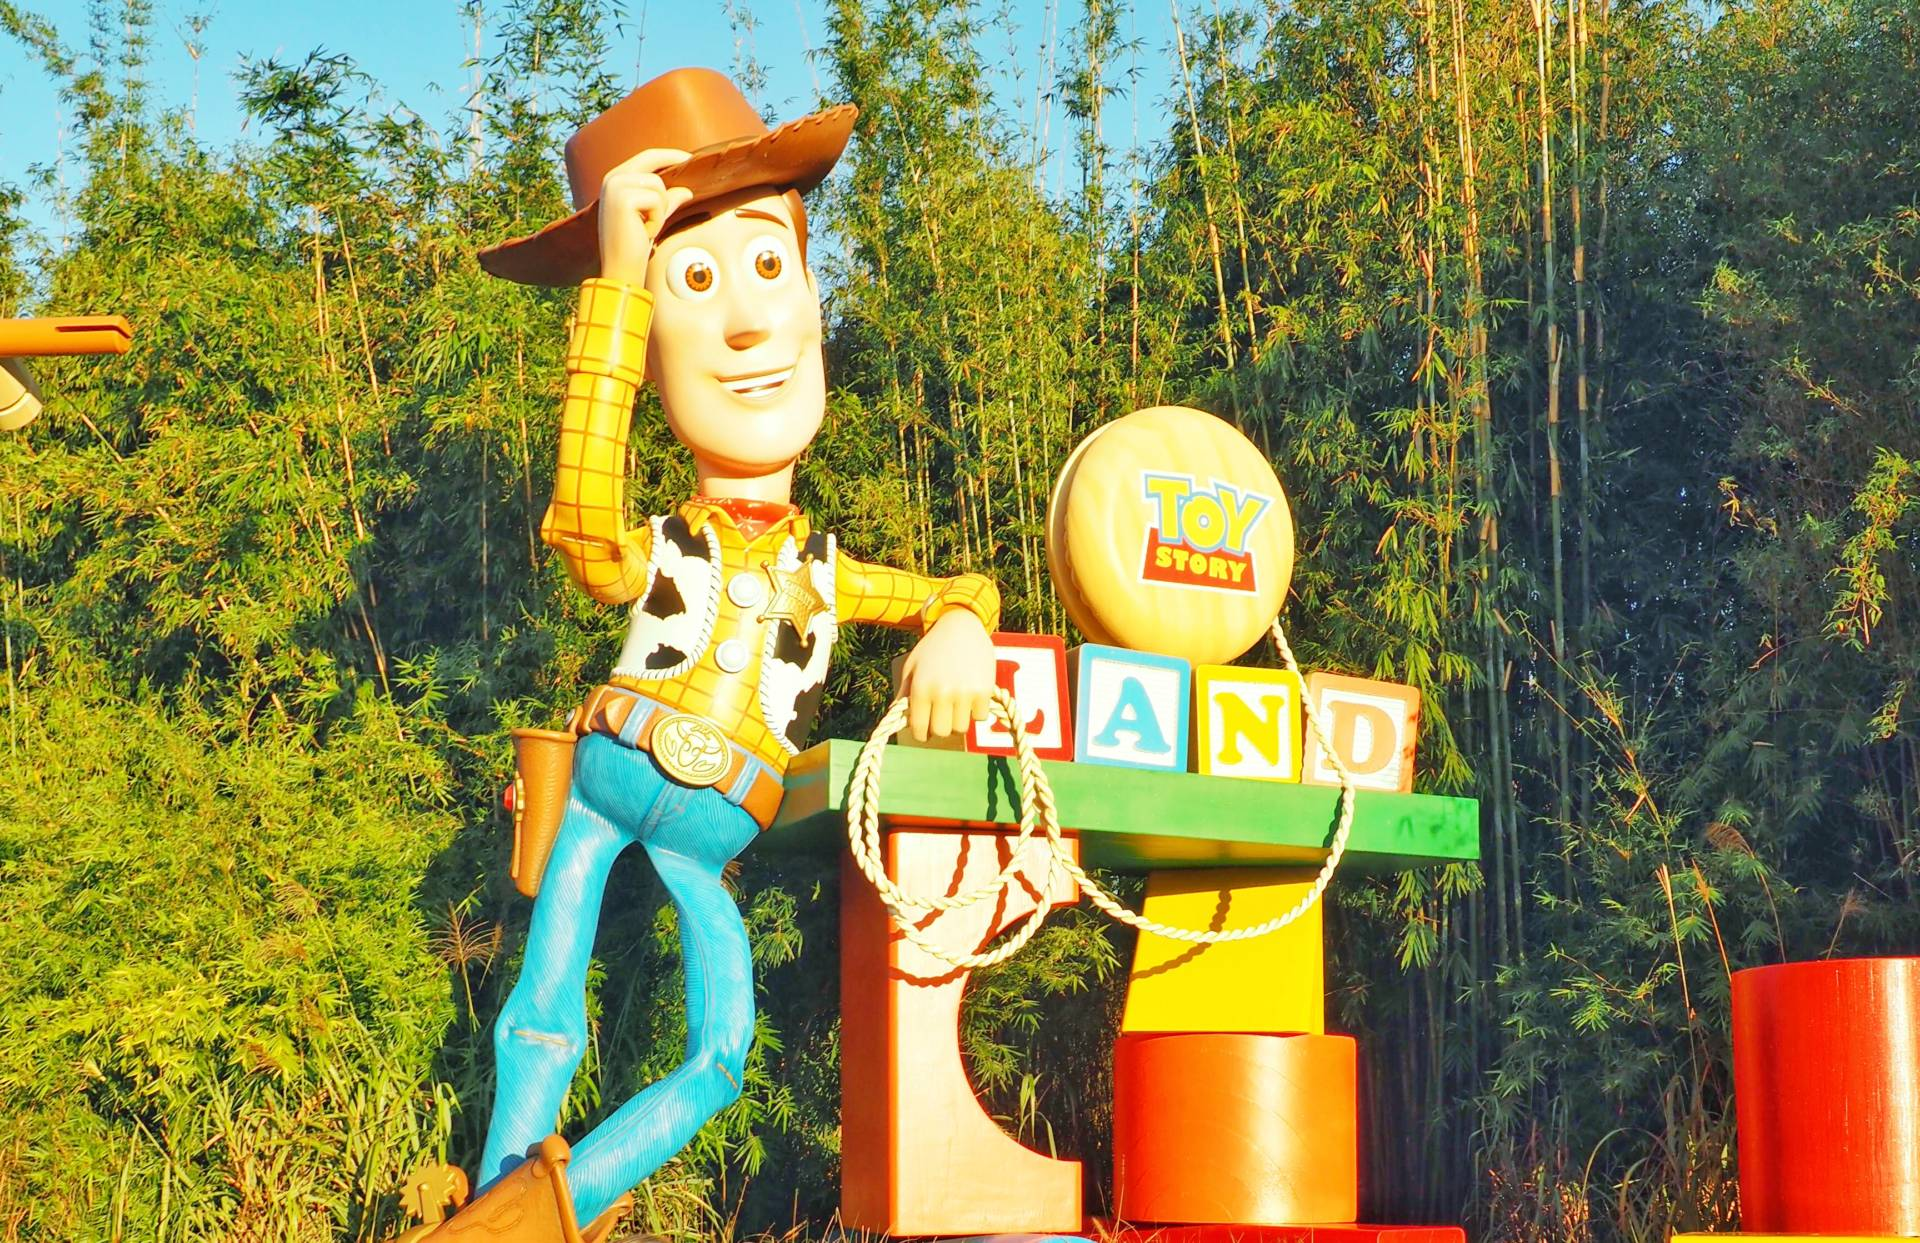 Toy-Story-Land-Orlando-Florida